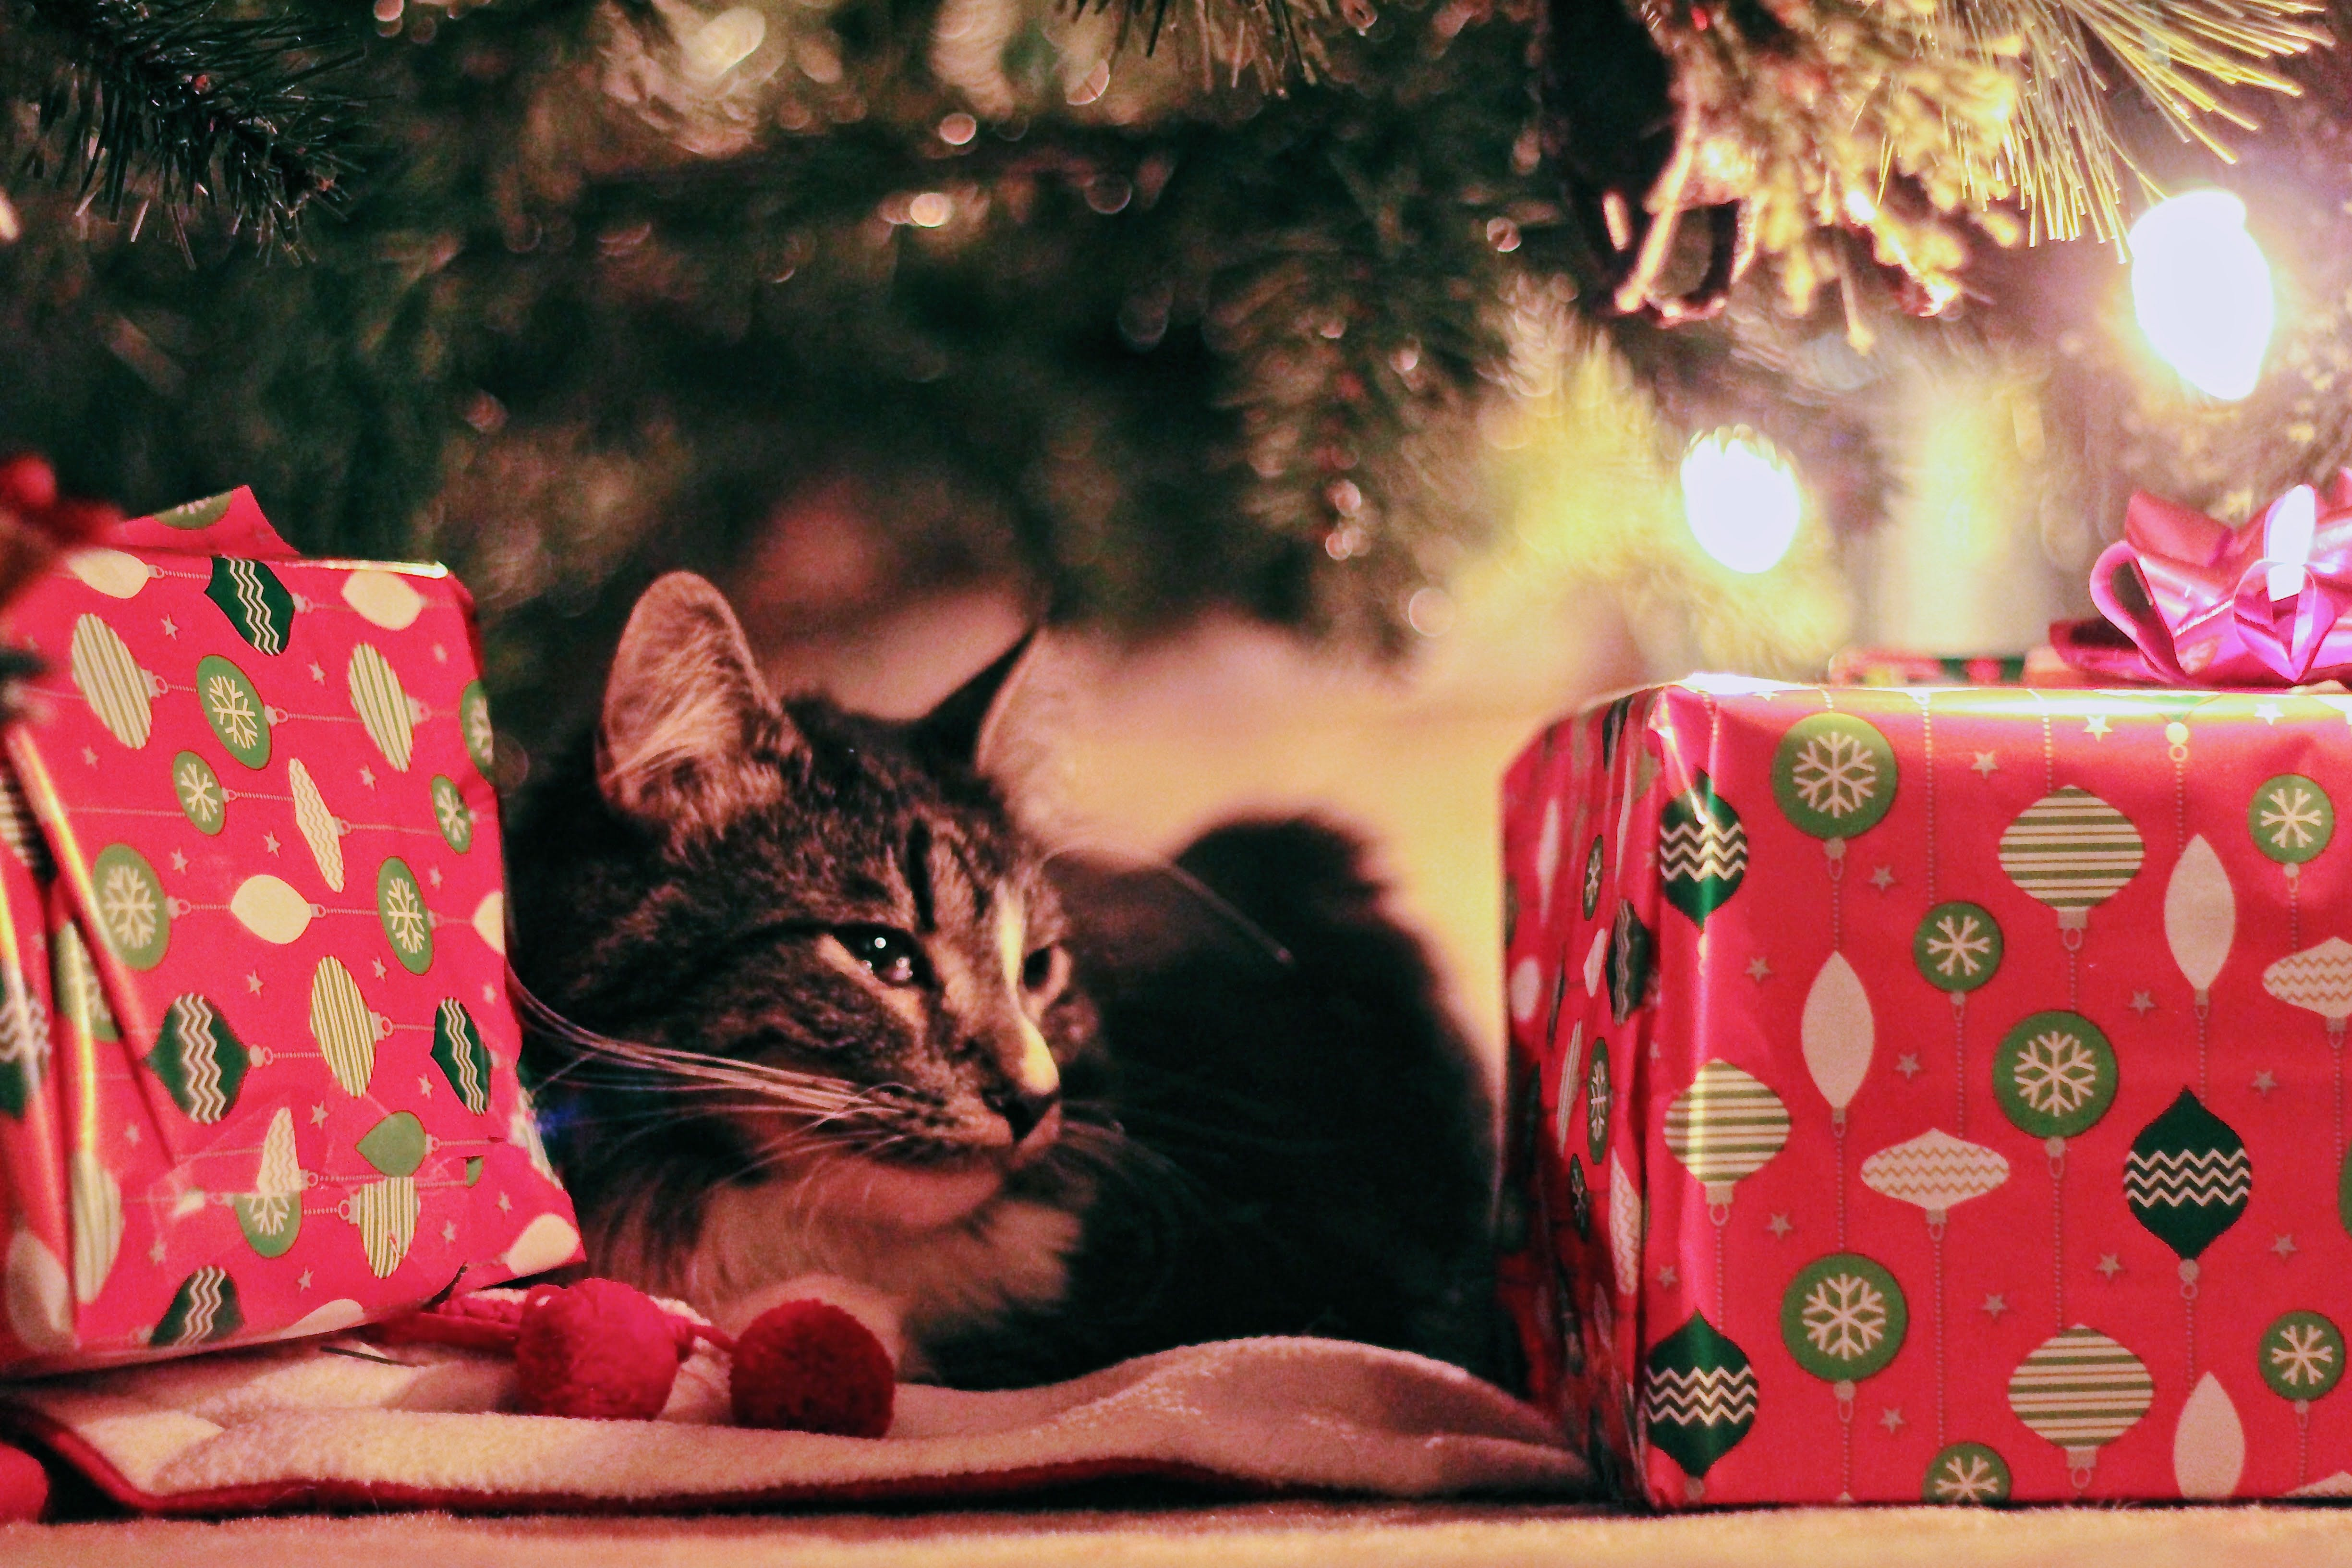 Tabby Cat Lying Under Christmas Tree With Gifts